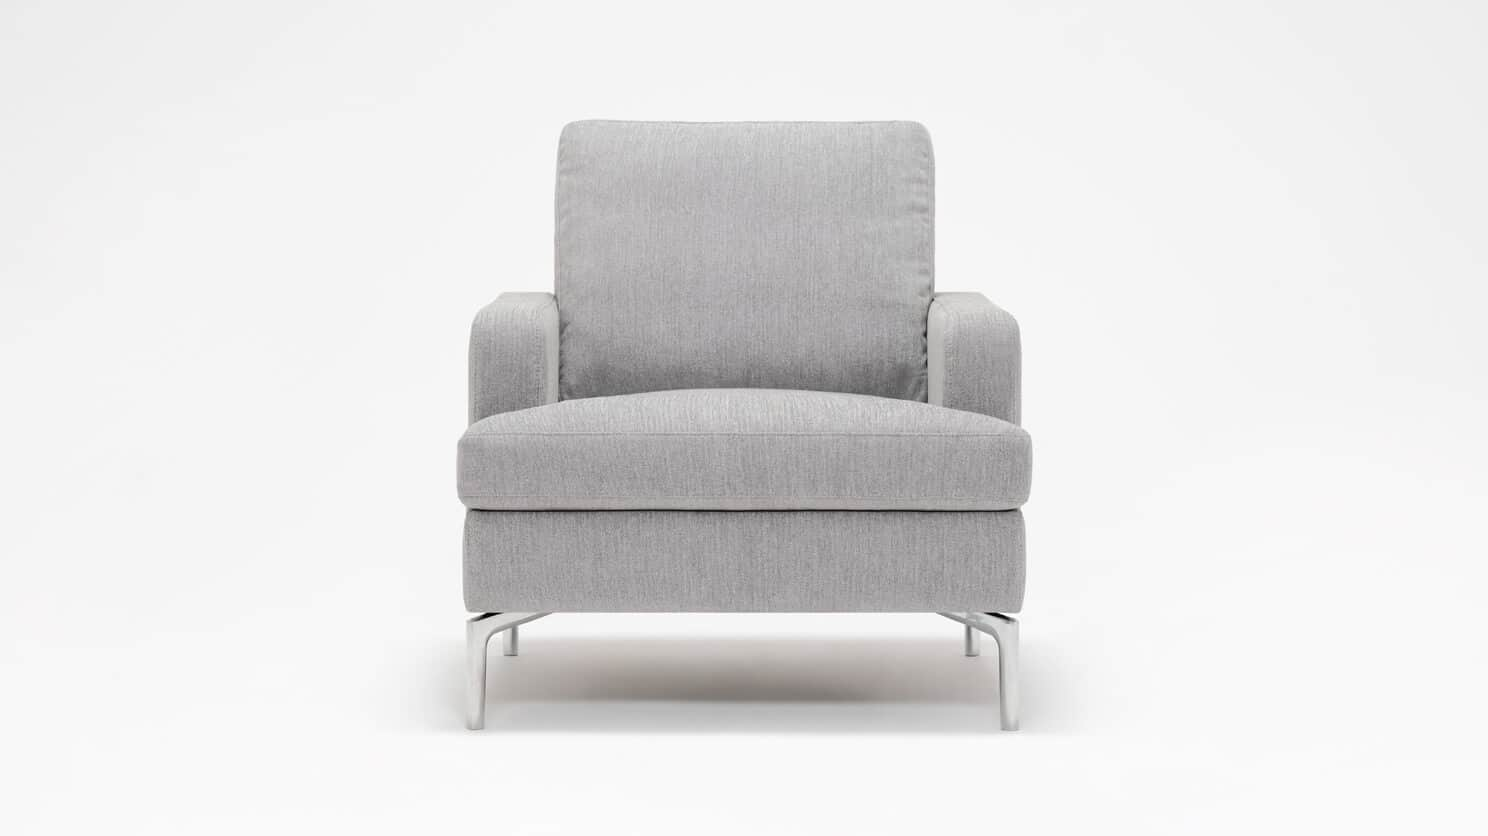 31127 02 1 chairs eve chair coda concrete front 02 1